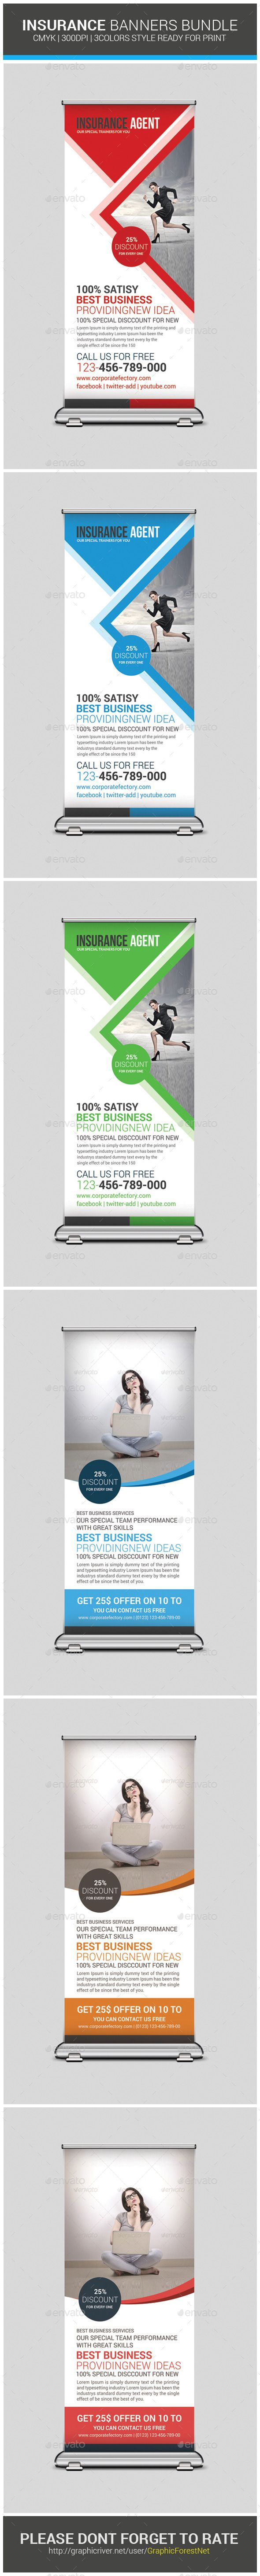 Insurance Business Banners Bundle Template #design Download: http://graphicriver.net/item/insurance-business-banners-bundle-template/9319452?ref=ksioks